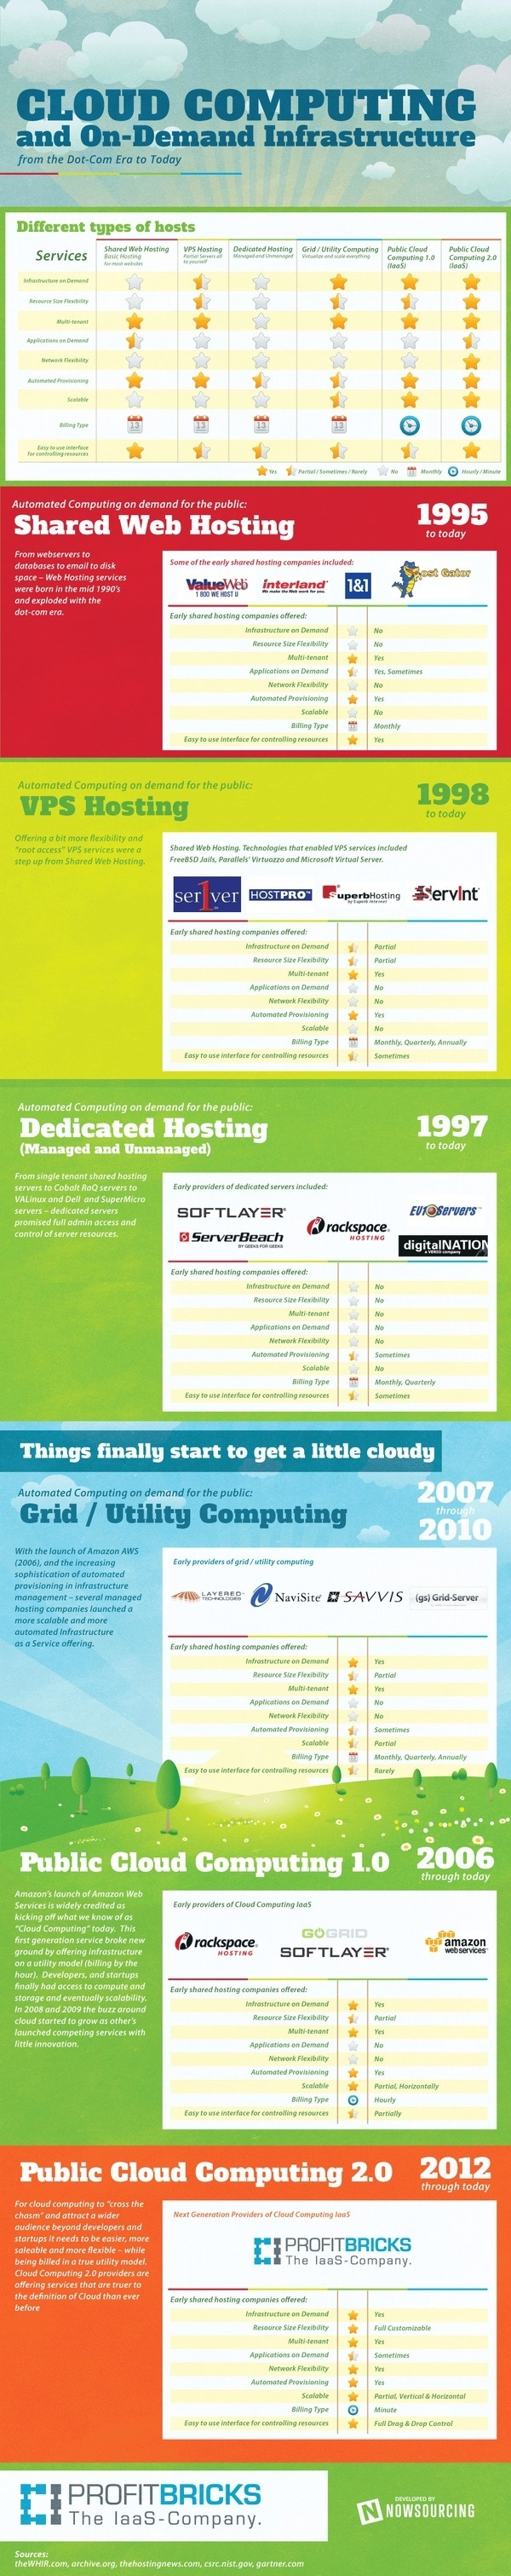 Infographic – Cloud Computing and On-Demand Infrastructure: 1995 to Today #cloud #infographic #hosting #computing #web